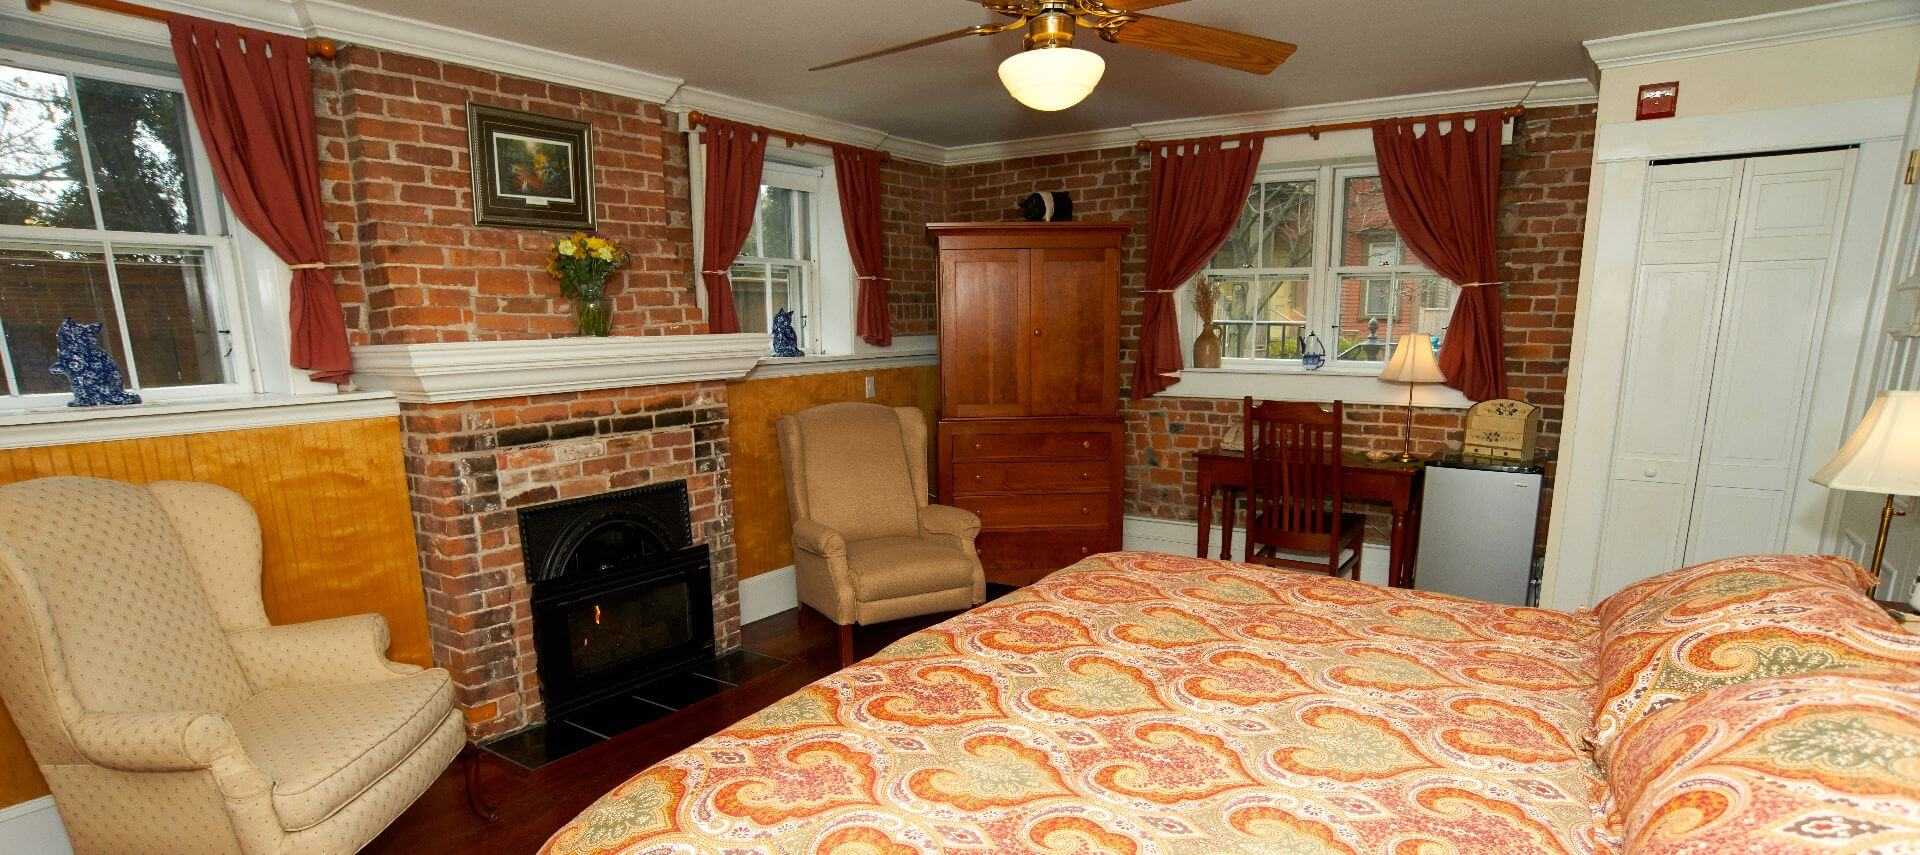 Bedroom with a brick fireplace, king sized bed, wooden armoire, wingback chair and two windows.